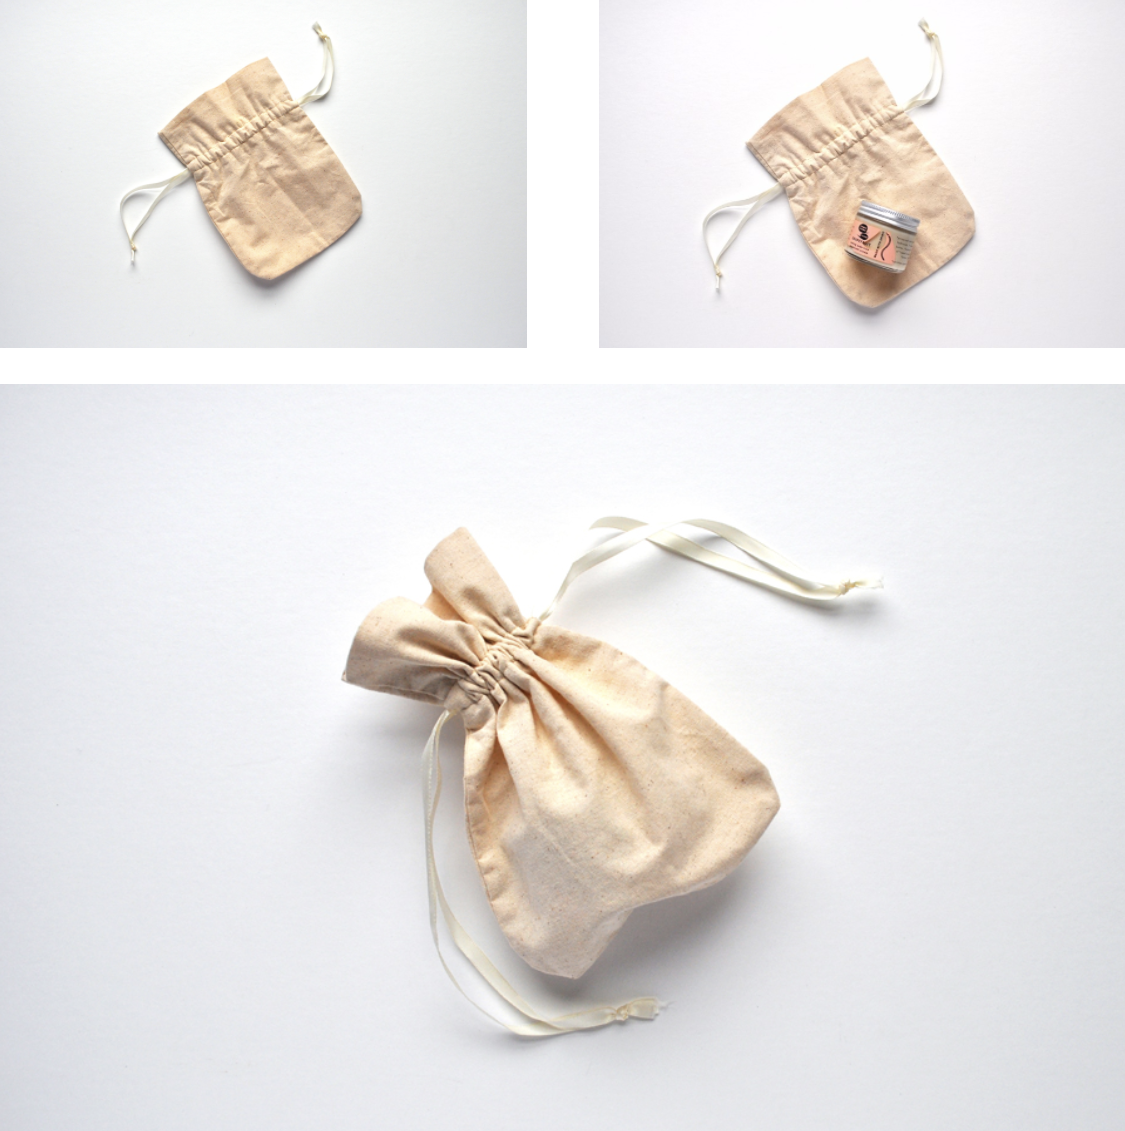 Images of small cloth bags